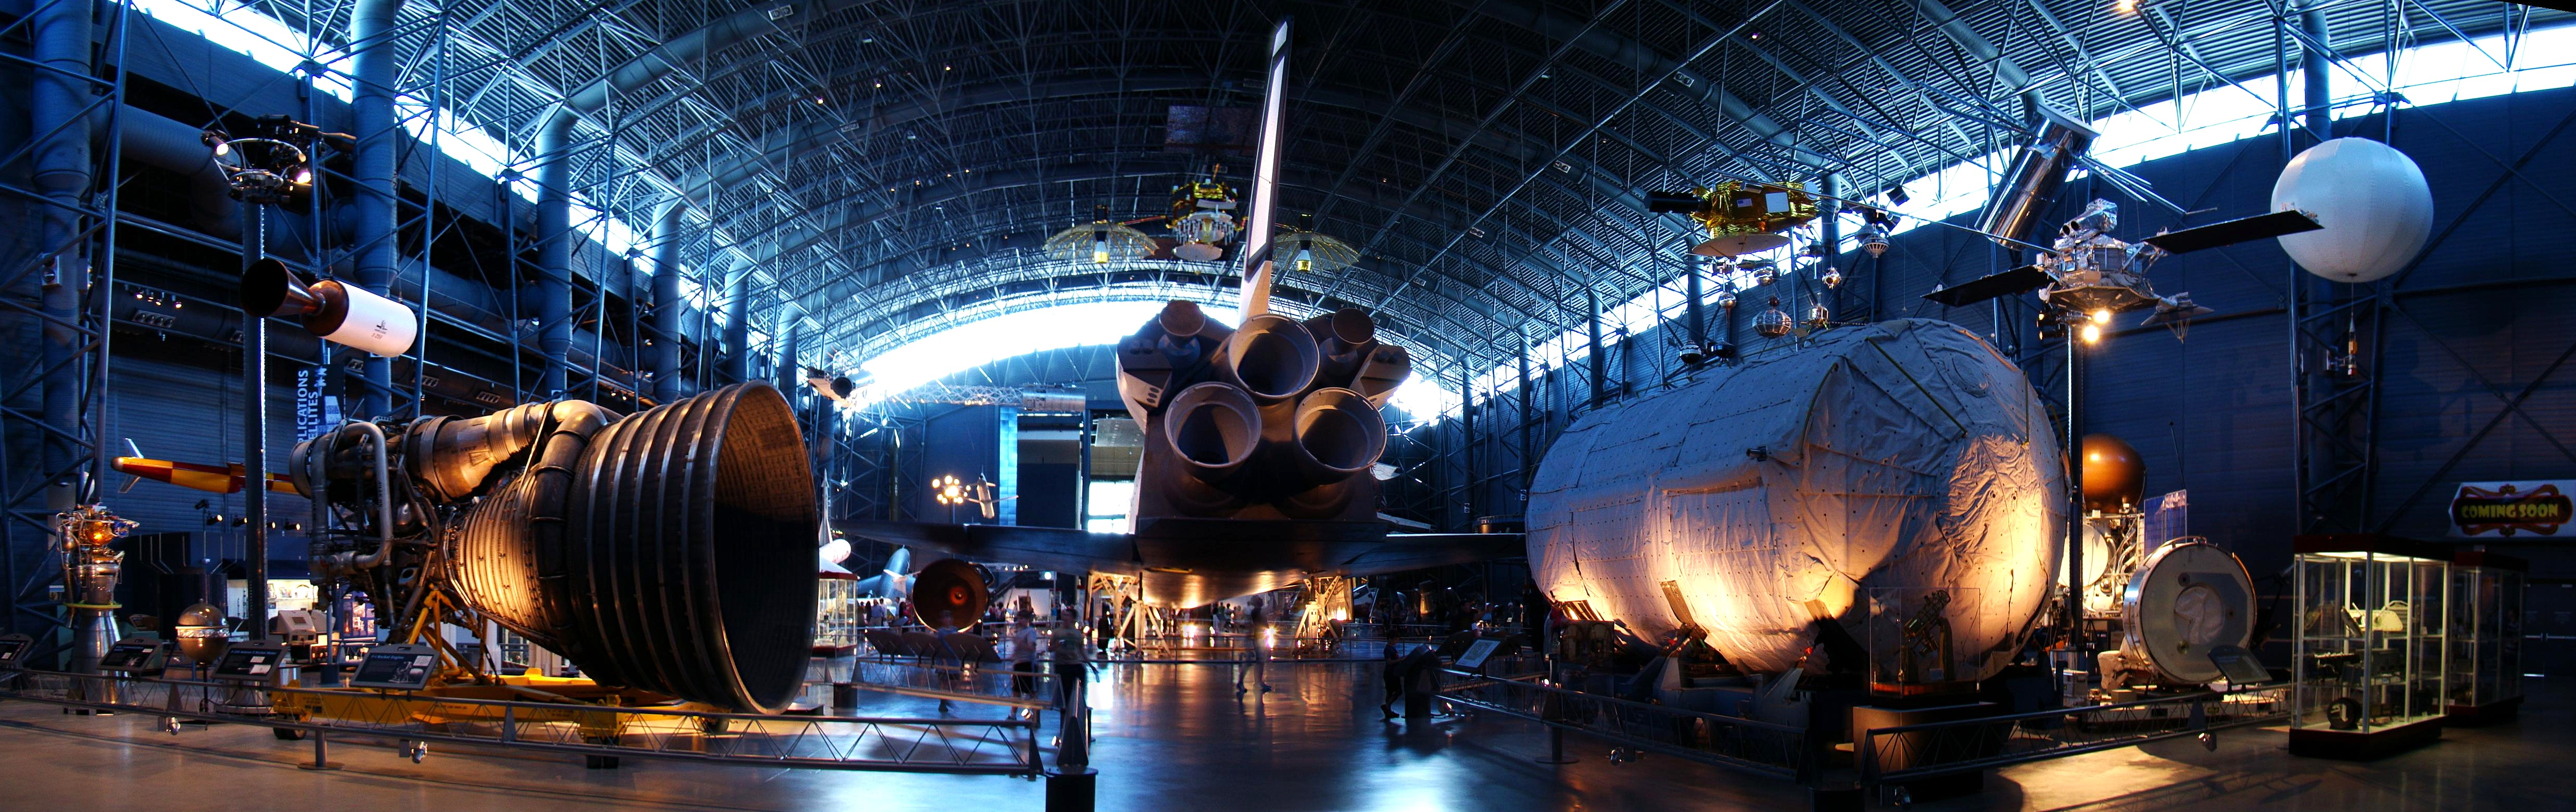 50 Beautiful Photos Of National Air And Space Museum In